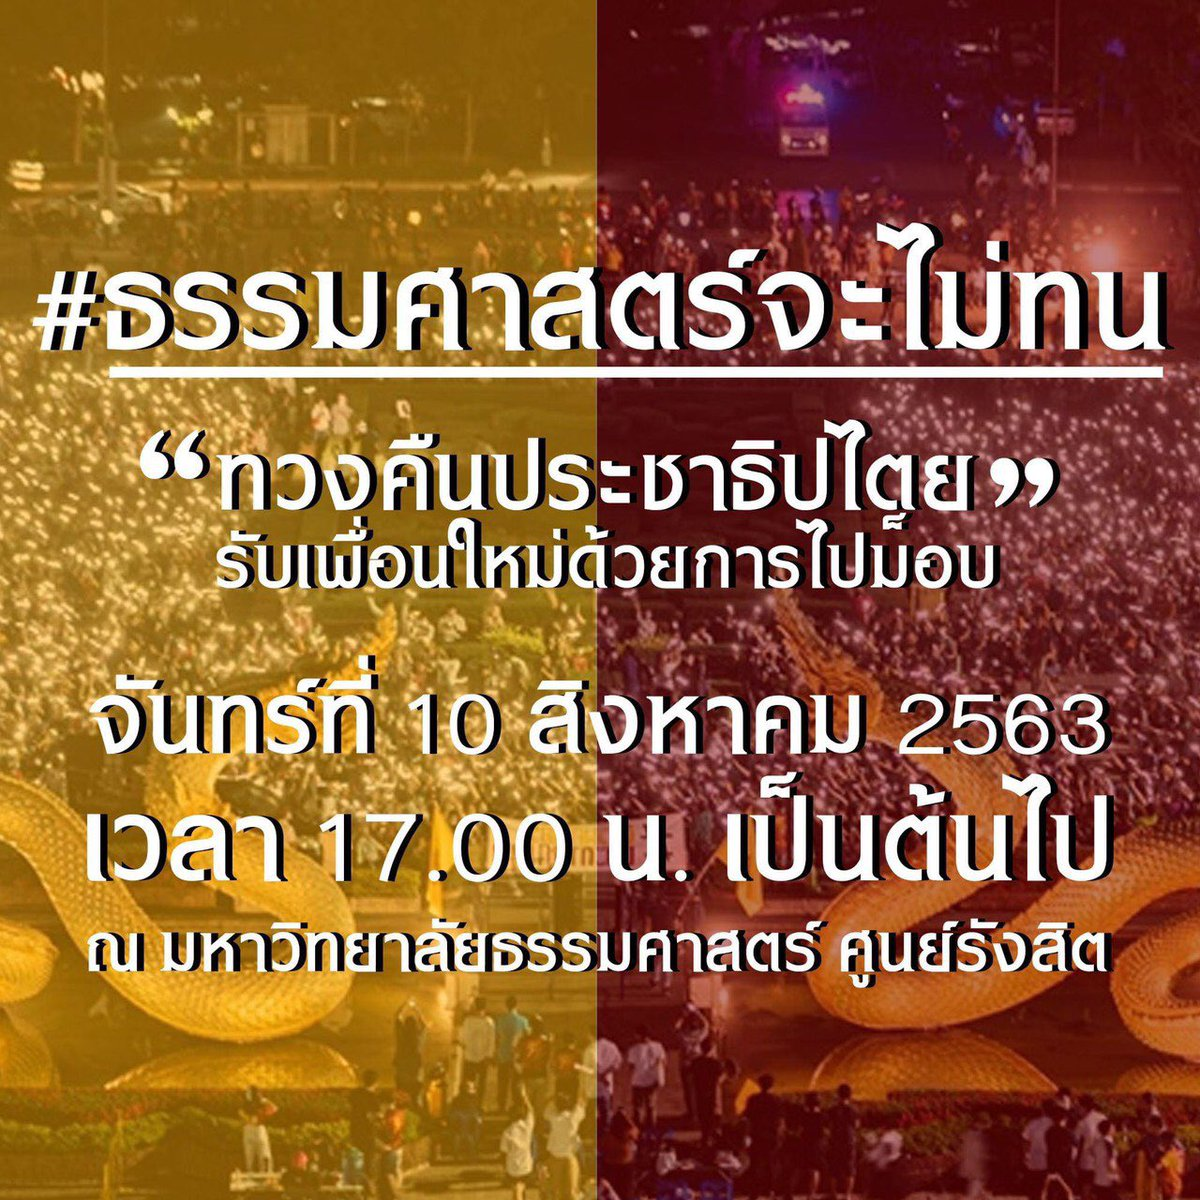 Anti-government student protests will take place across the country from July 23 onwards despite the extension of emergency in defiance of a ban on gatherings. Some of the locations are below. #ธรรมศาสตร์จะไม่ทน https://t.co/hJh3SXni4L